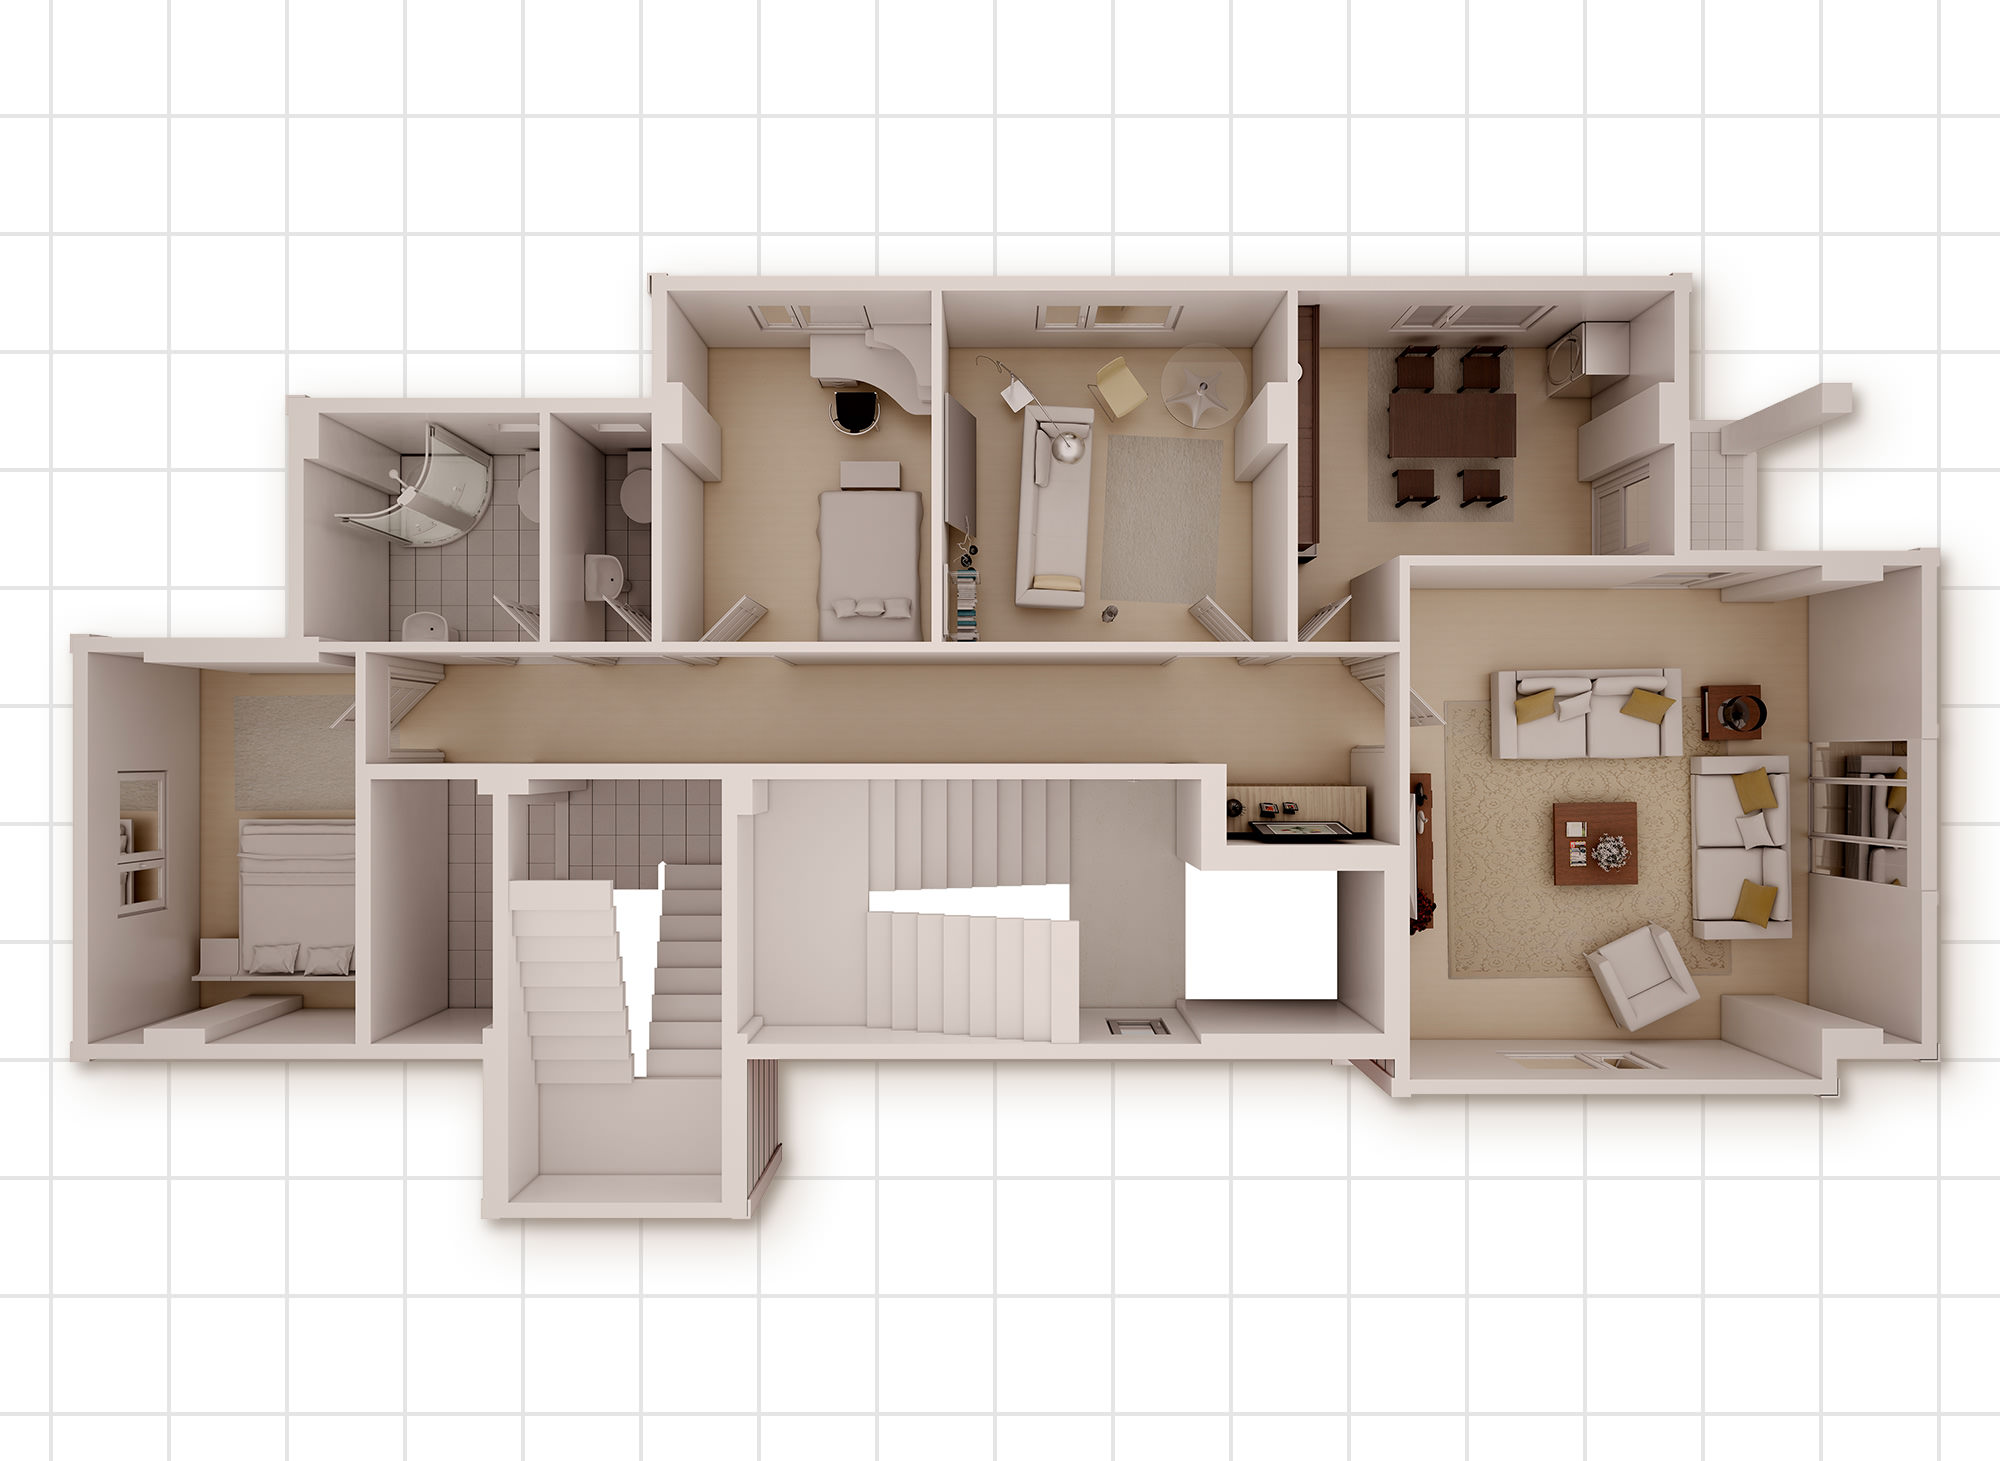 3d Floorplan - Architectural